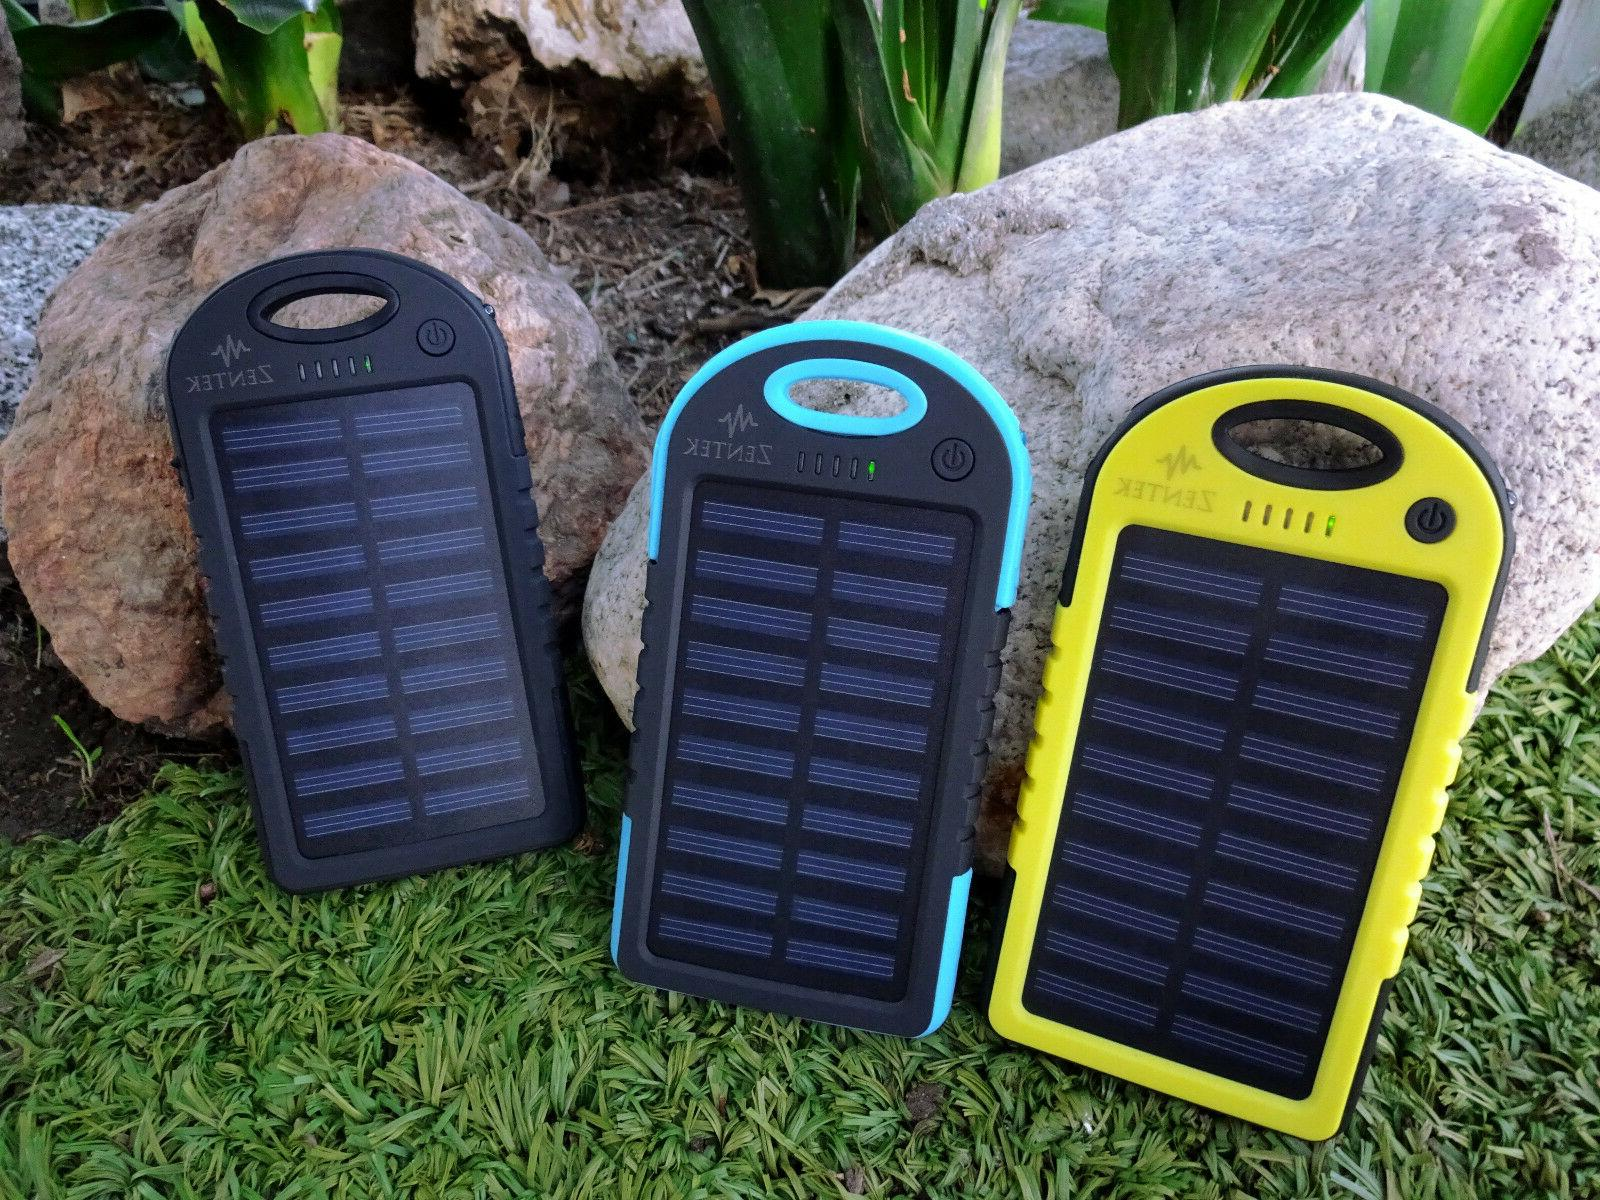 Solar Charger Portable Battery Pack Backpack For iPhone 6, C